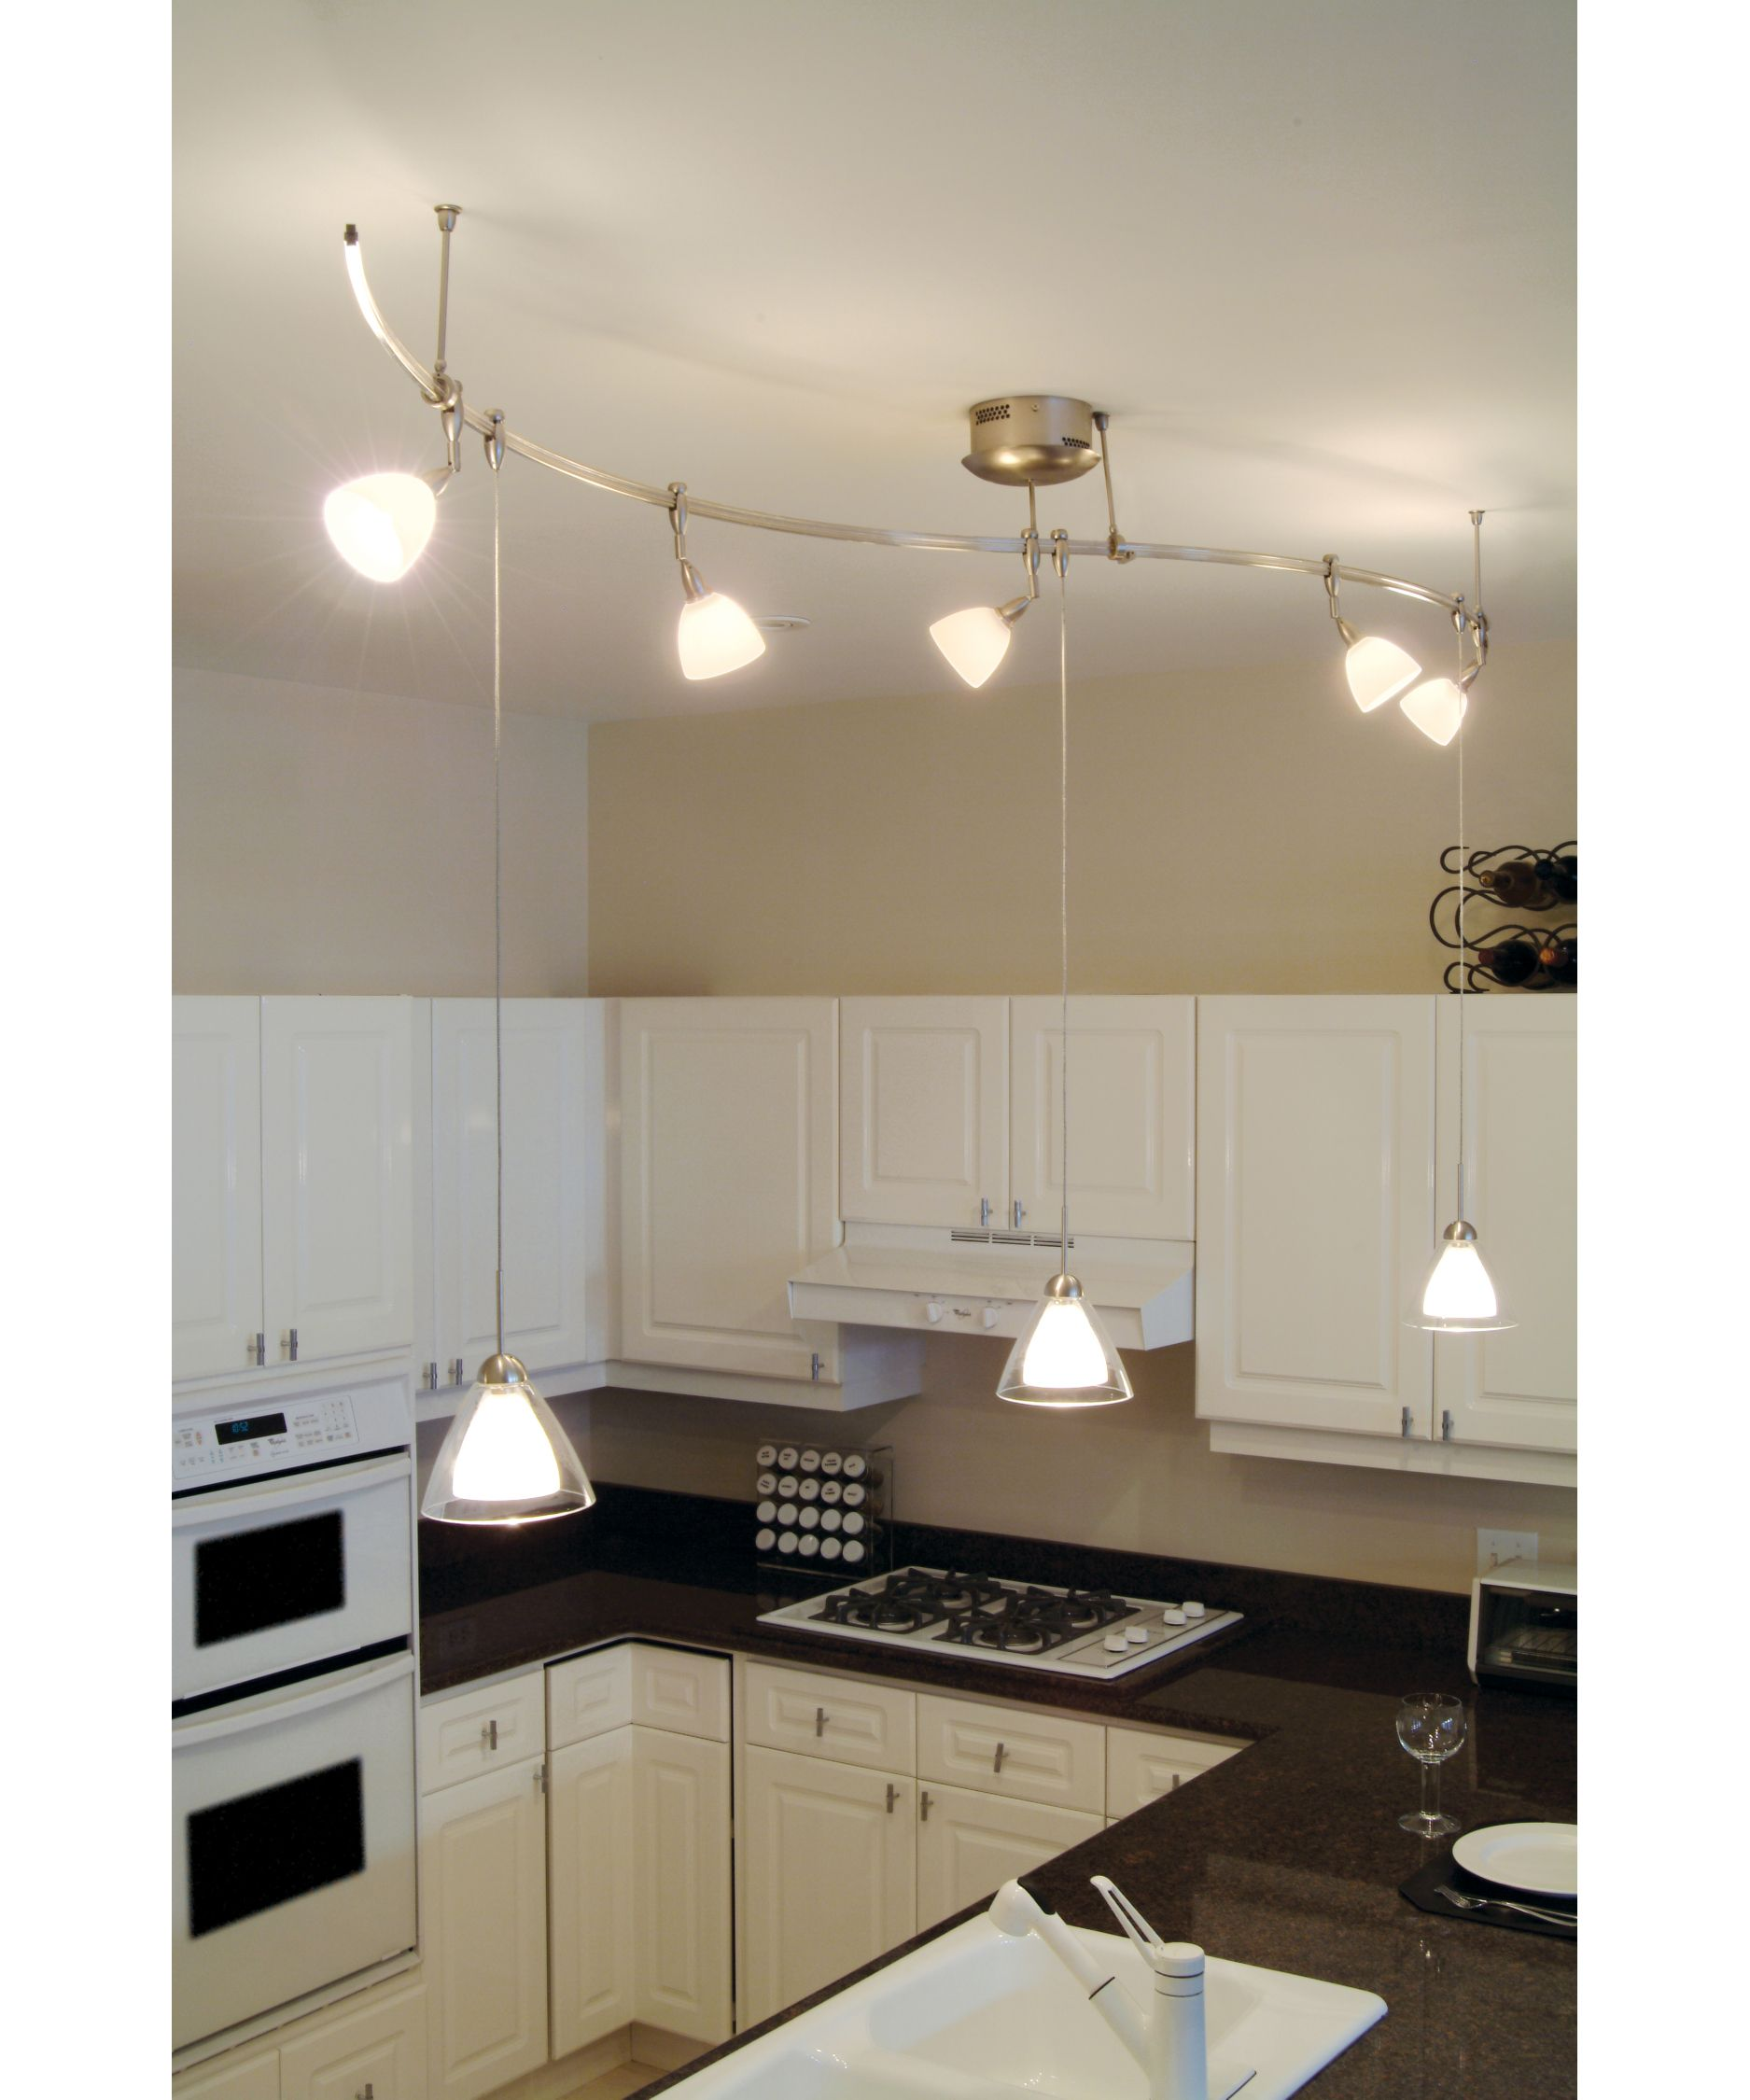 Kitchen Track Lighting Kitchen Track Light Maybe One Hangs Down Over Sink For